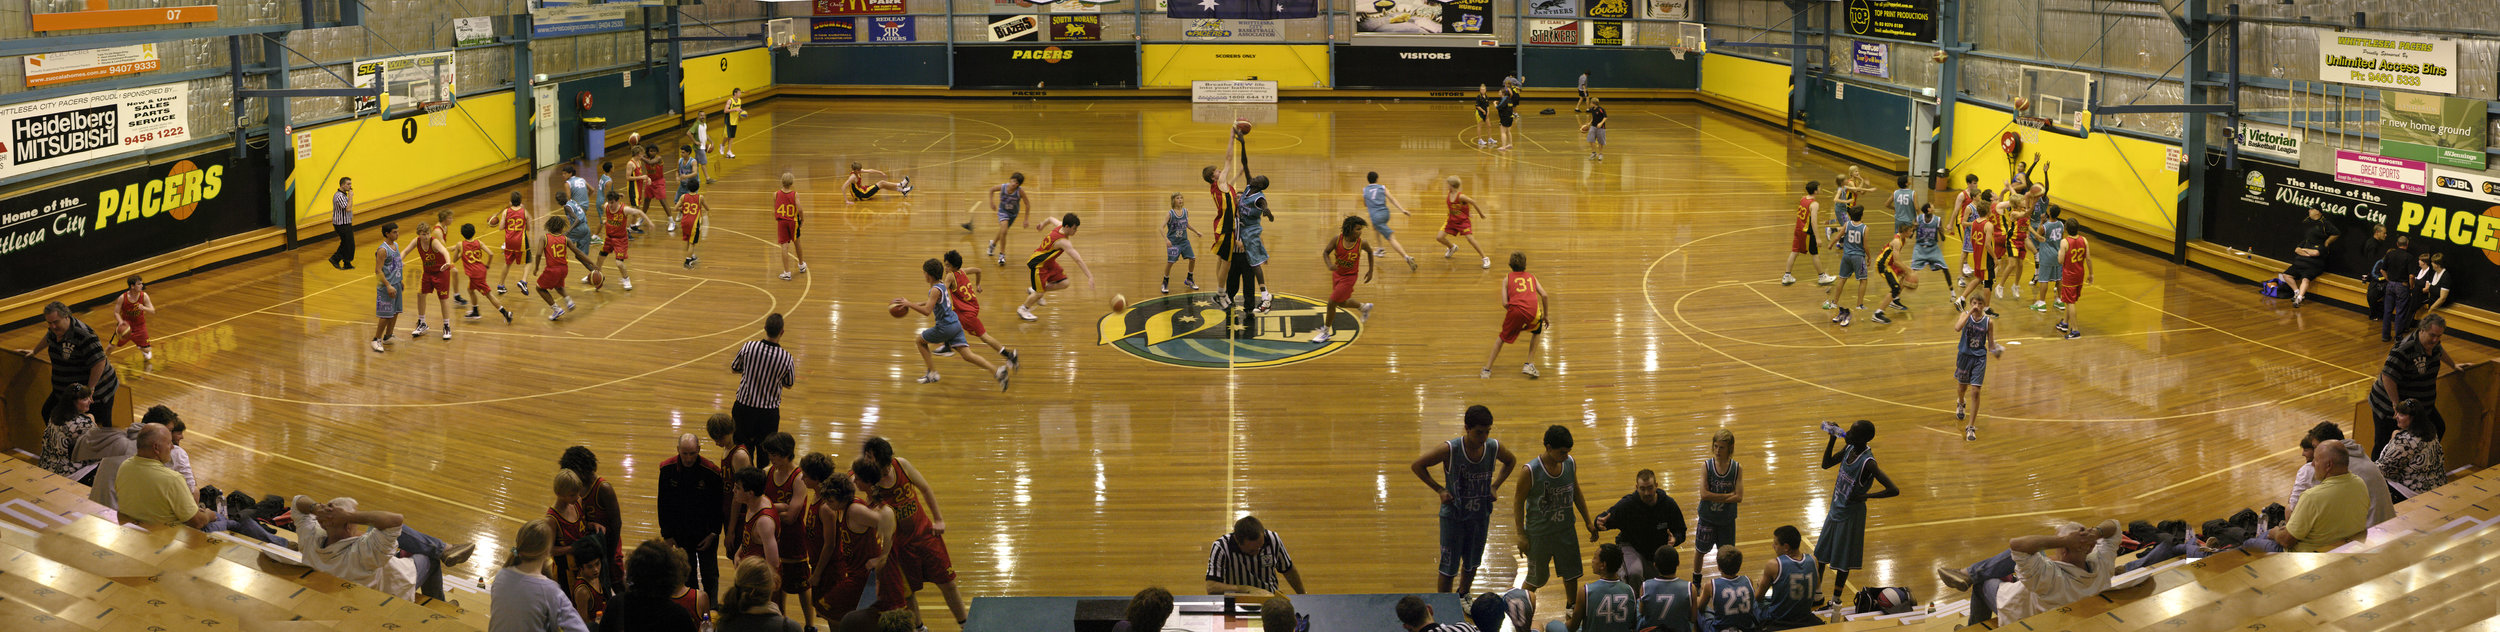 Interior basketball stadium - Whittlesea